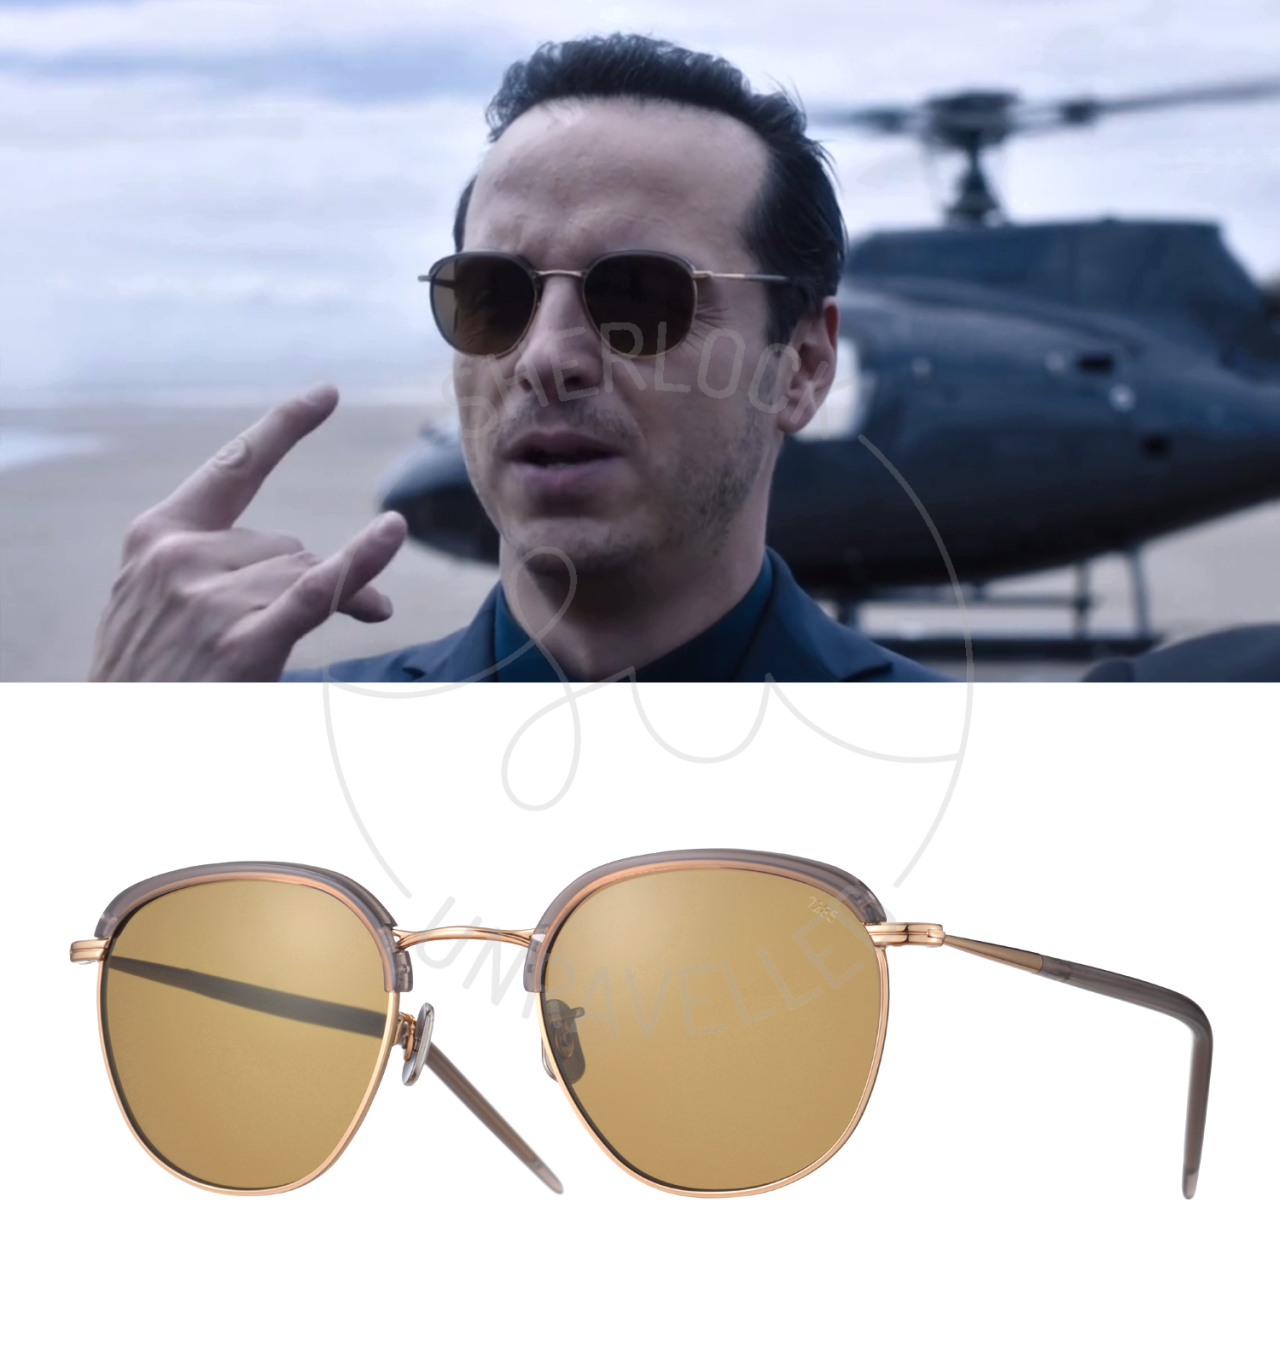 7593af82d8 Eyevan 7285 Model 735 Clubmaster Sunglasses As worn by Jim Moriarty in The  Final Problem Tortoiseshell acetate with metal detailing.